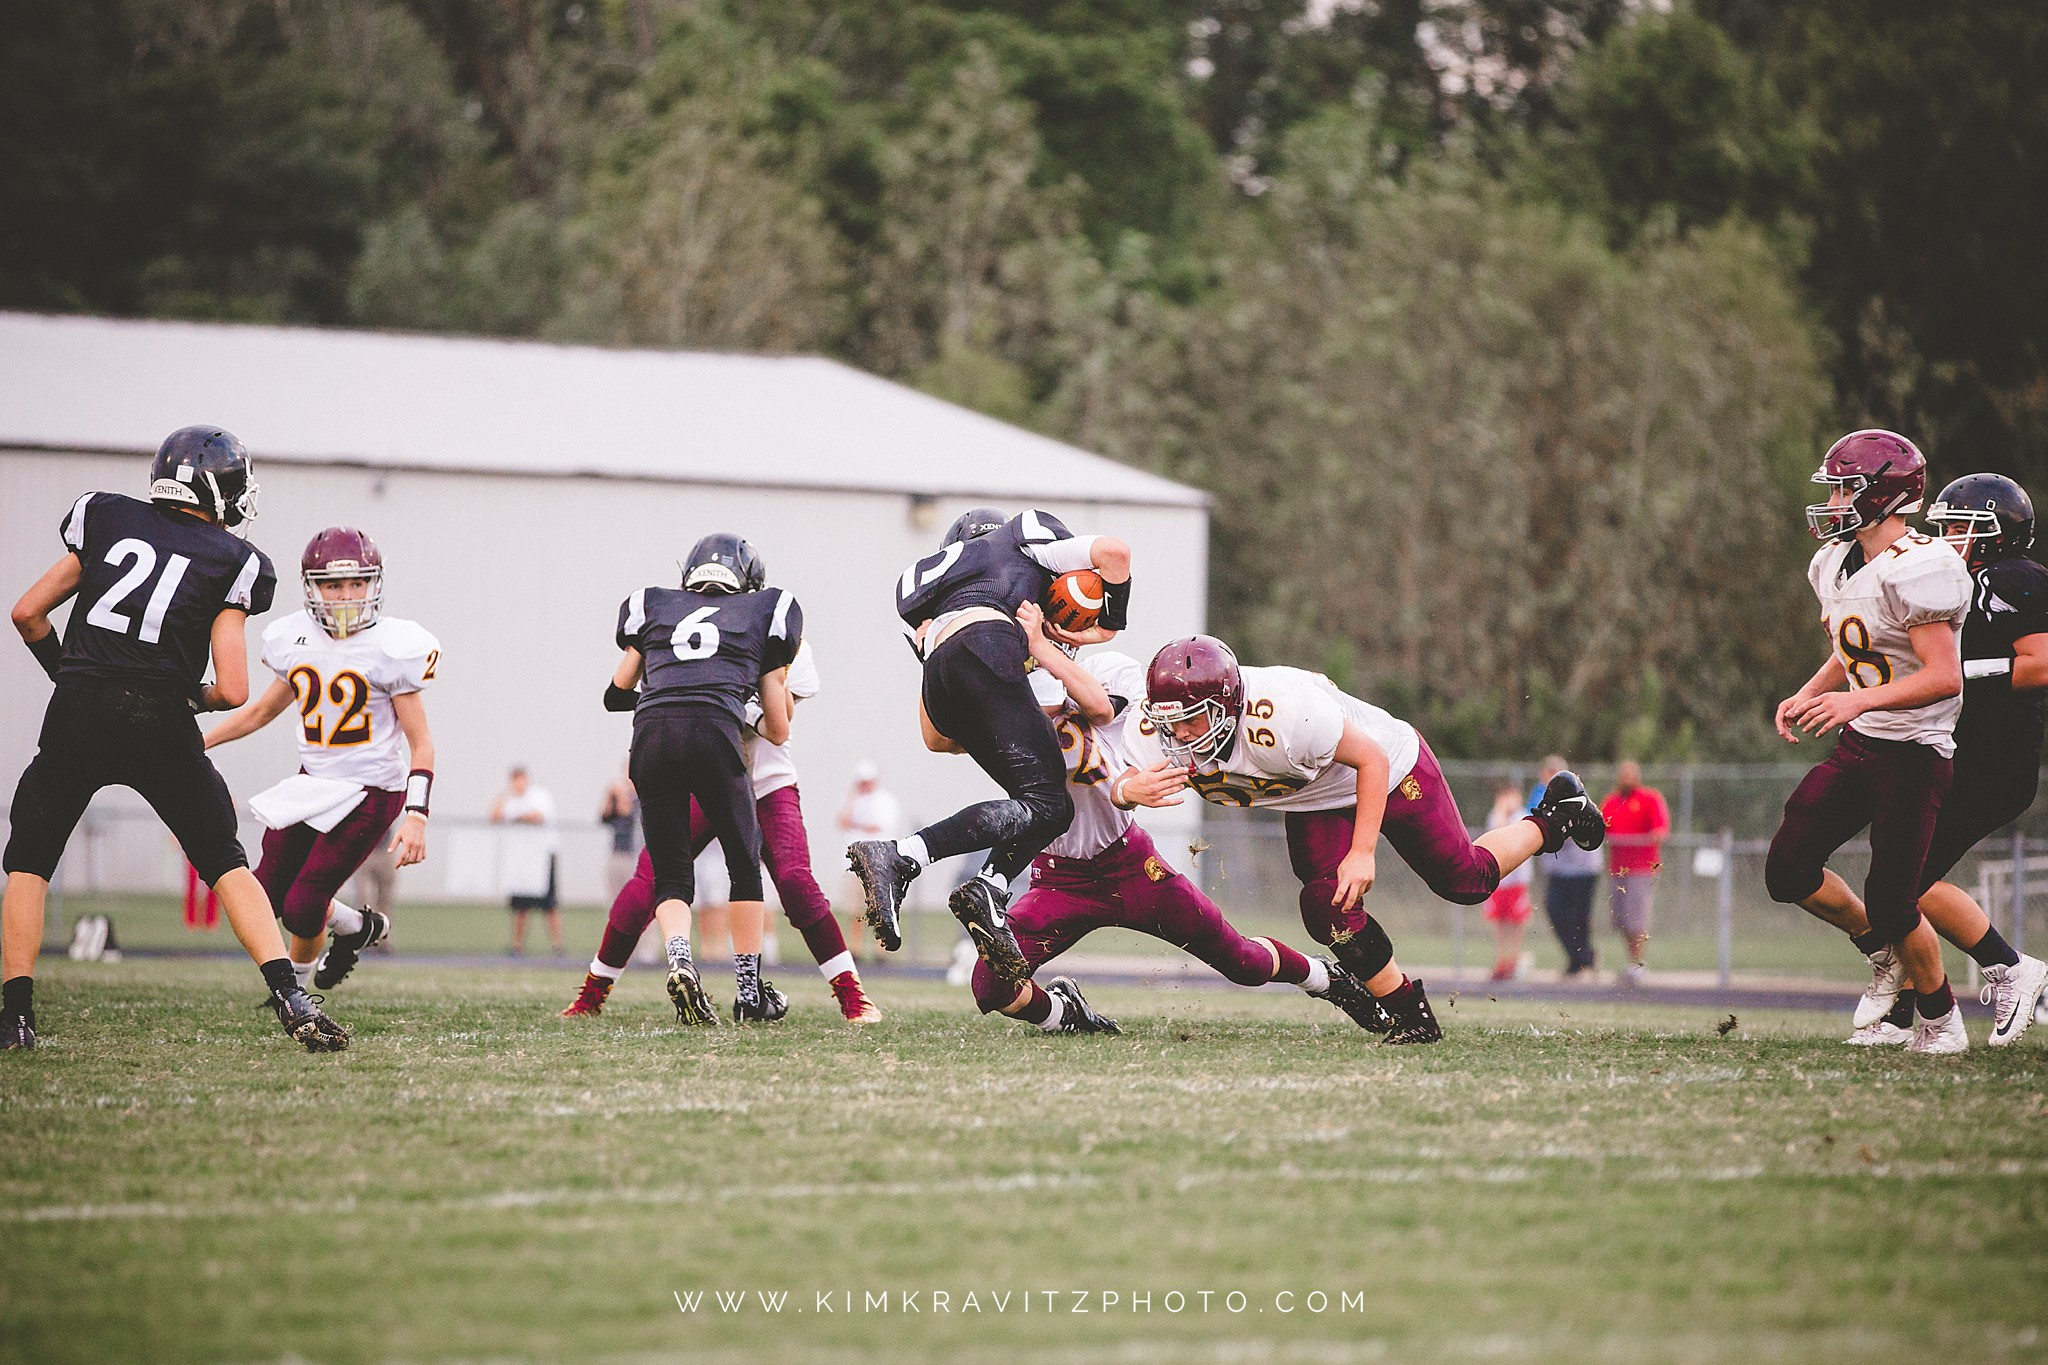 Girard Vs Frontenac Kansas Middle School Football Kim Kravitz Photo Girard Ks